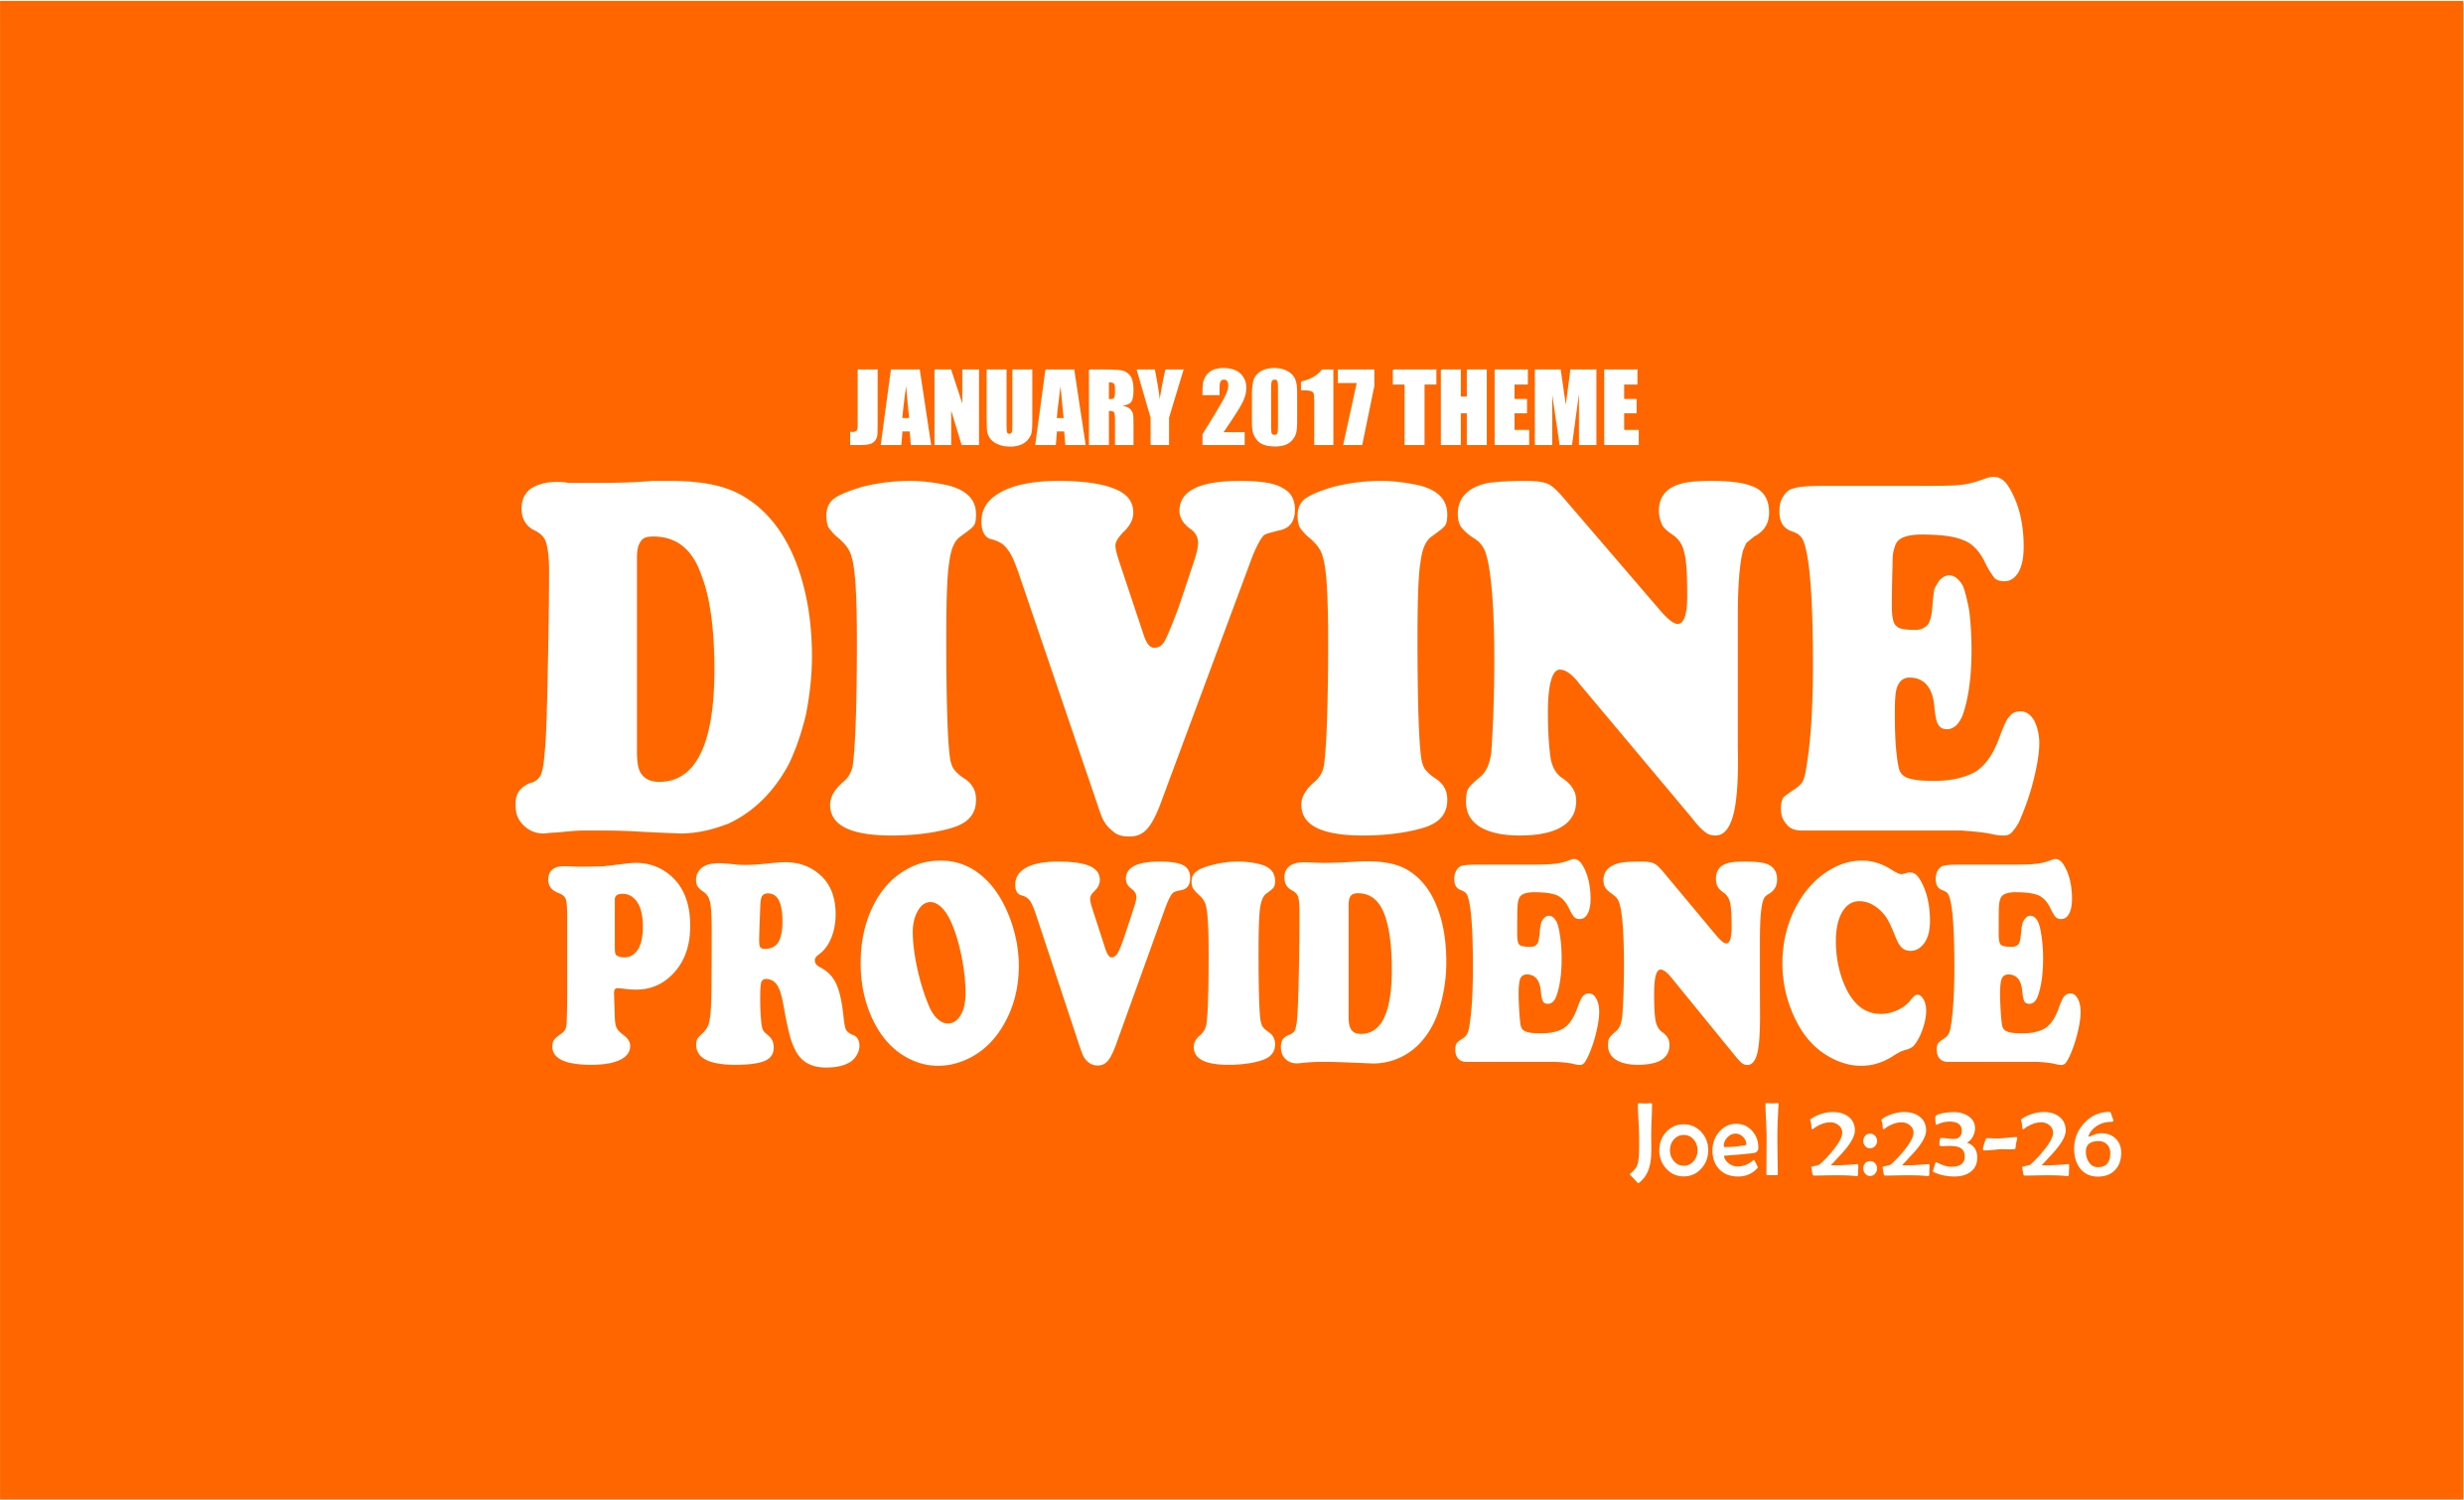 January 2017 Theme – Divine Providence (Joel 2: 23-26)